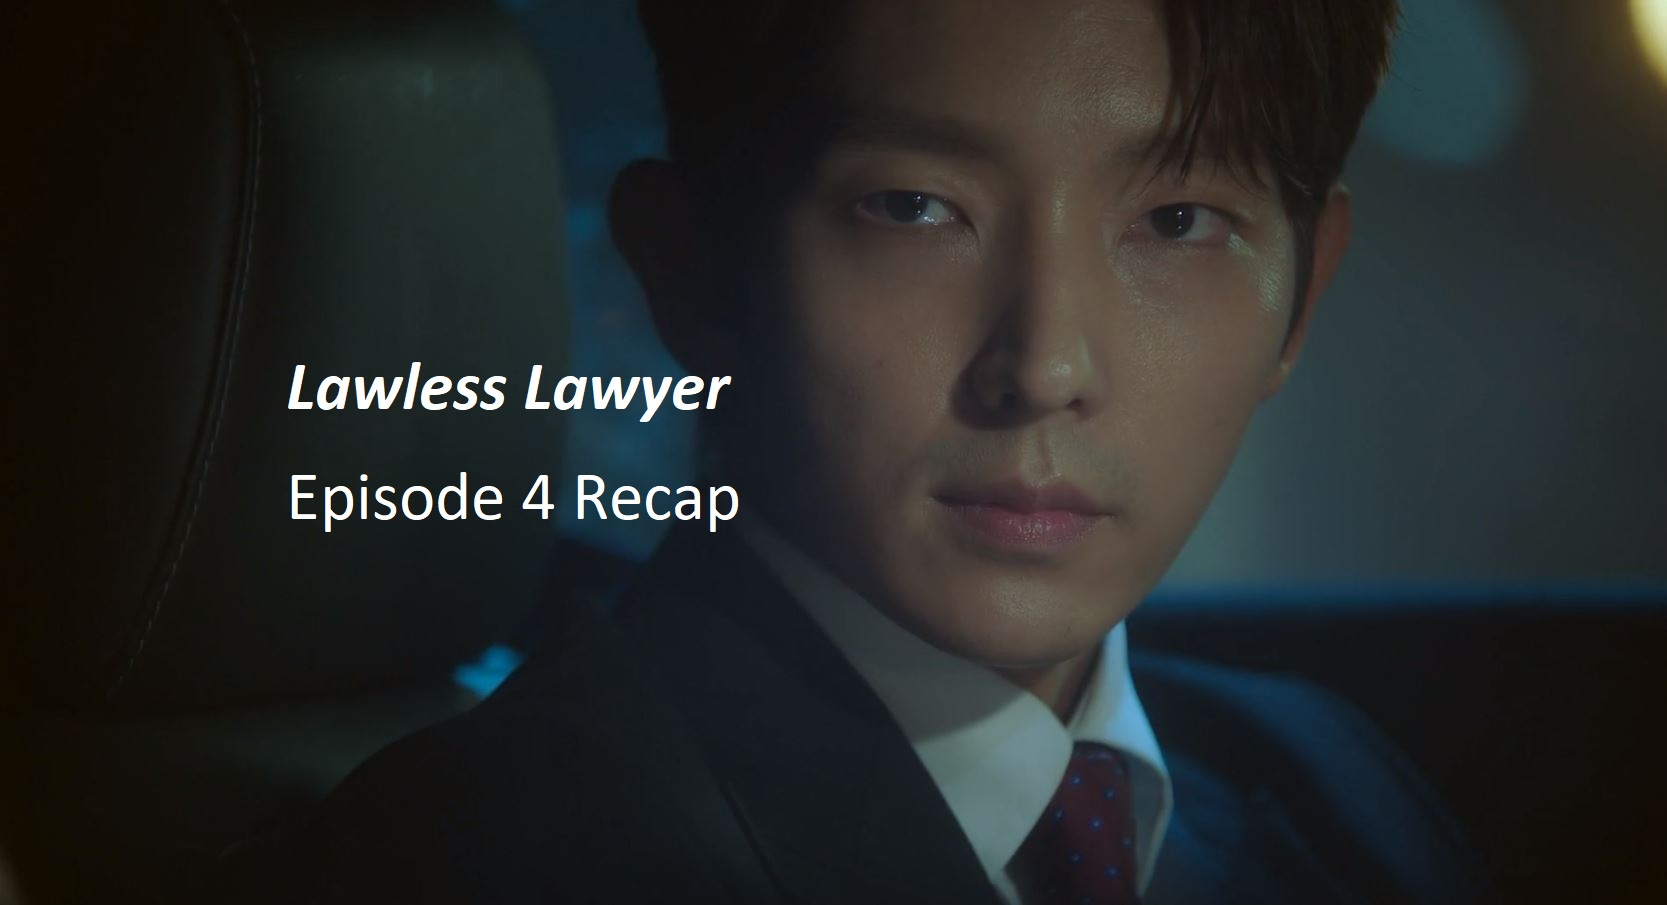 Lawless Lawyer Episode 4 Recap | amusings